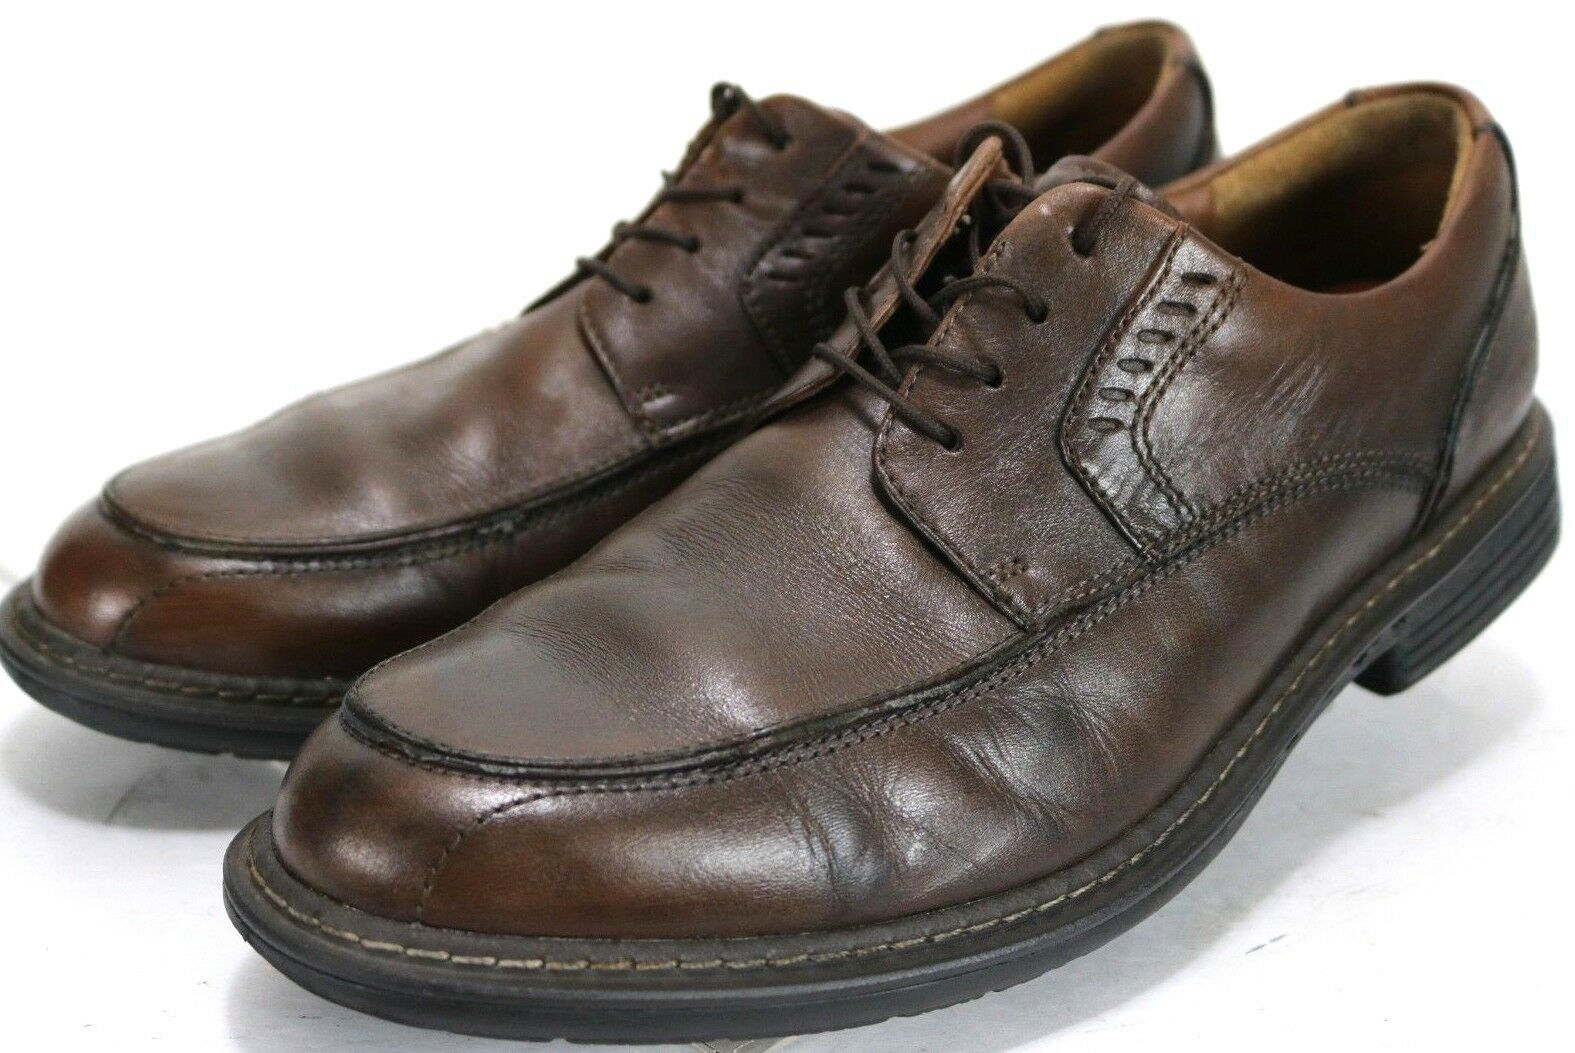 Clarks Unstructured Men's  Dress shoes Size 8.5 Leather Brown